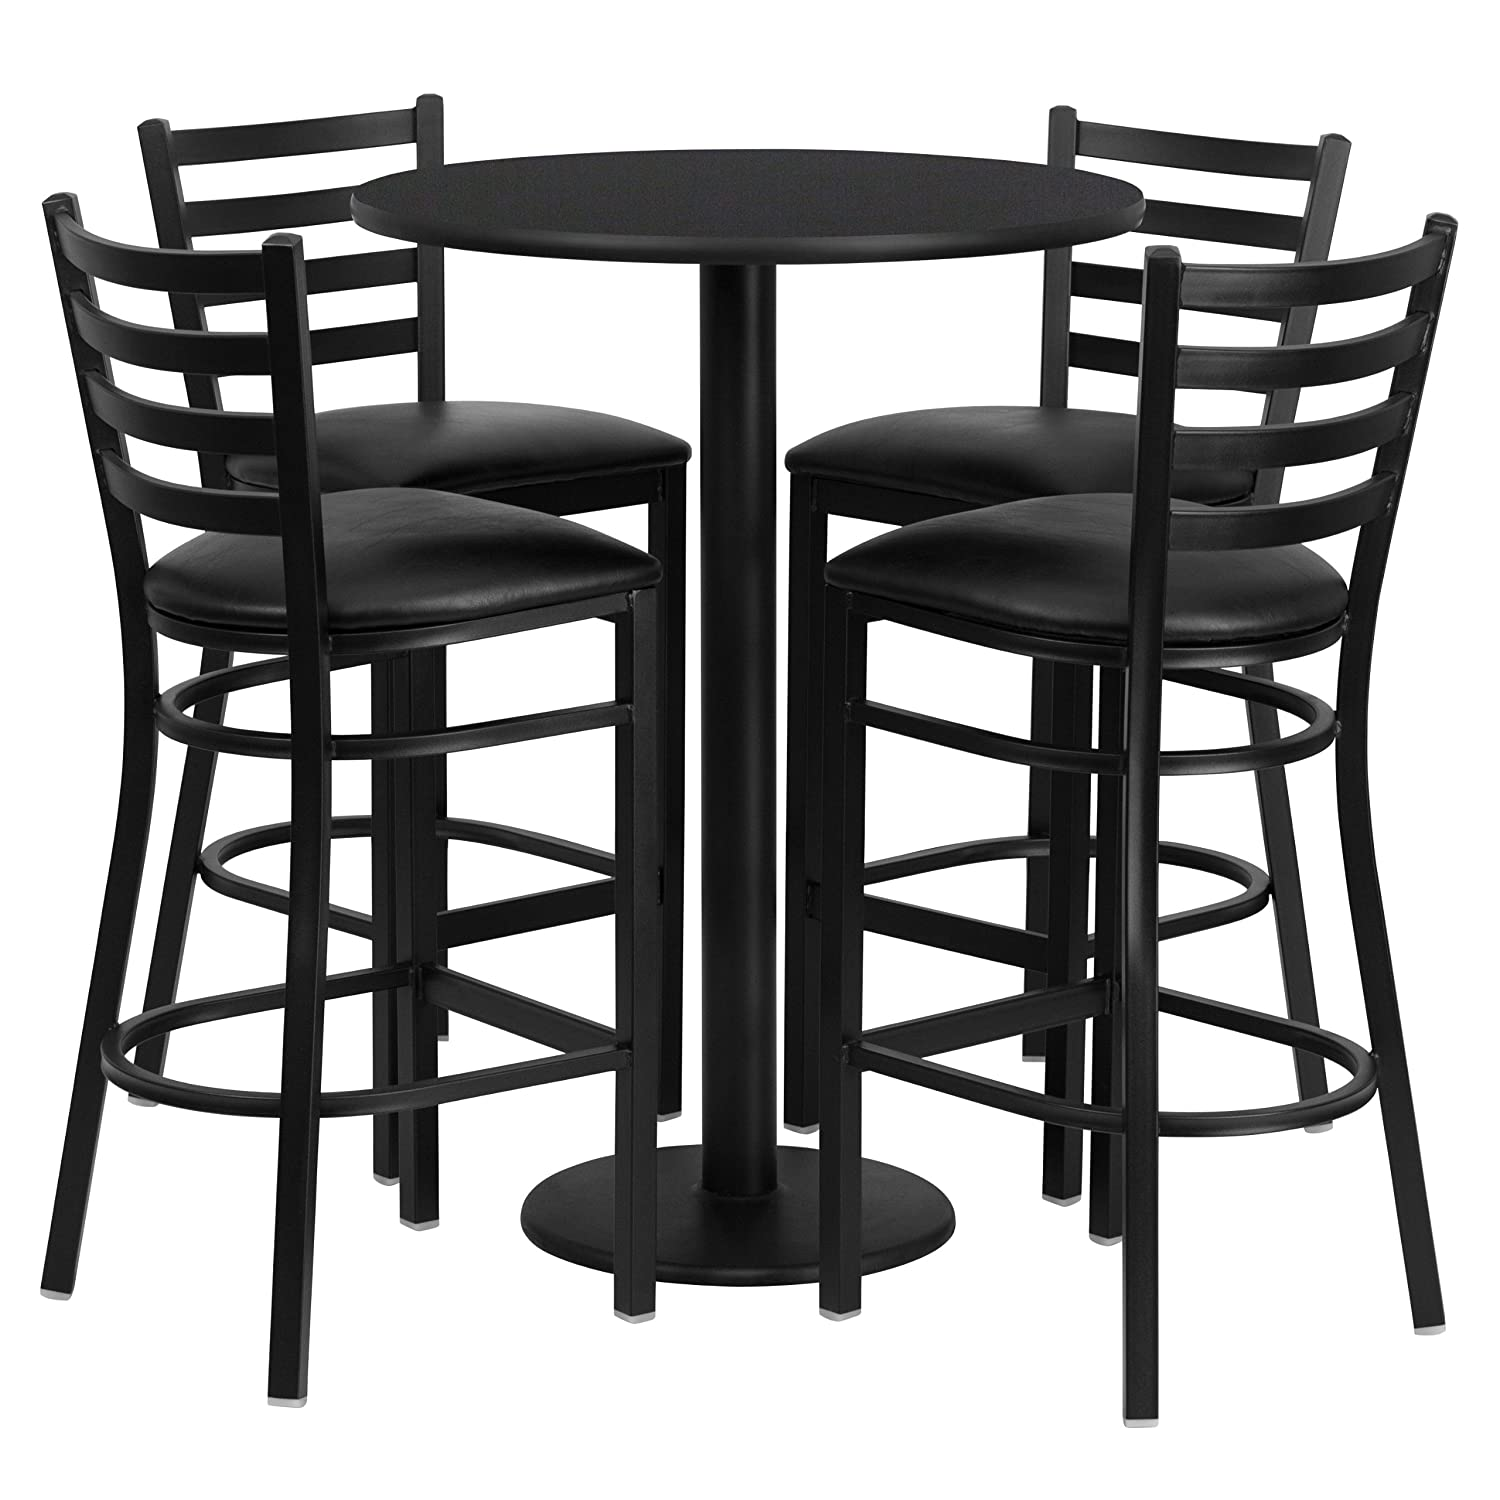 Bon Amazon.com: Flash Furniture 30u0027u0027 Round Black Laminate Table Set With 4  Ladder Back Metal Barstools   Black Vinyl Seat: Kitchen U0026 Dining